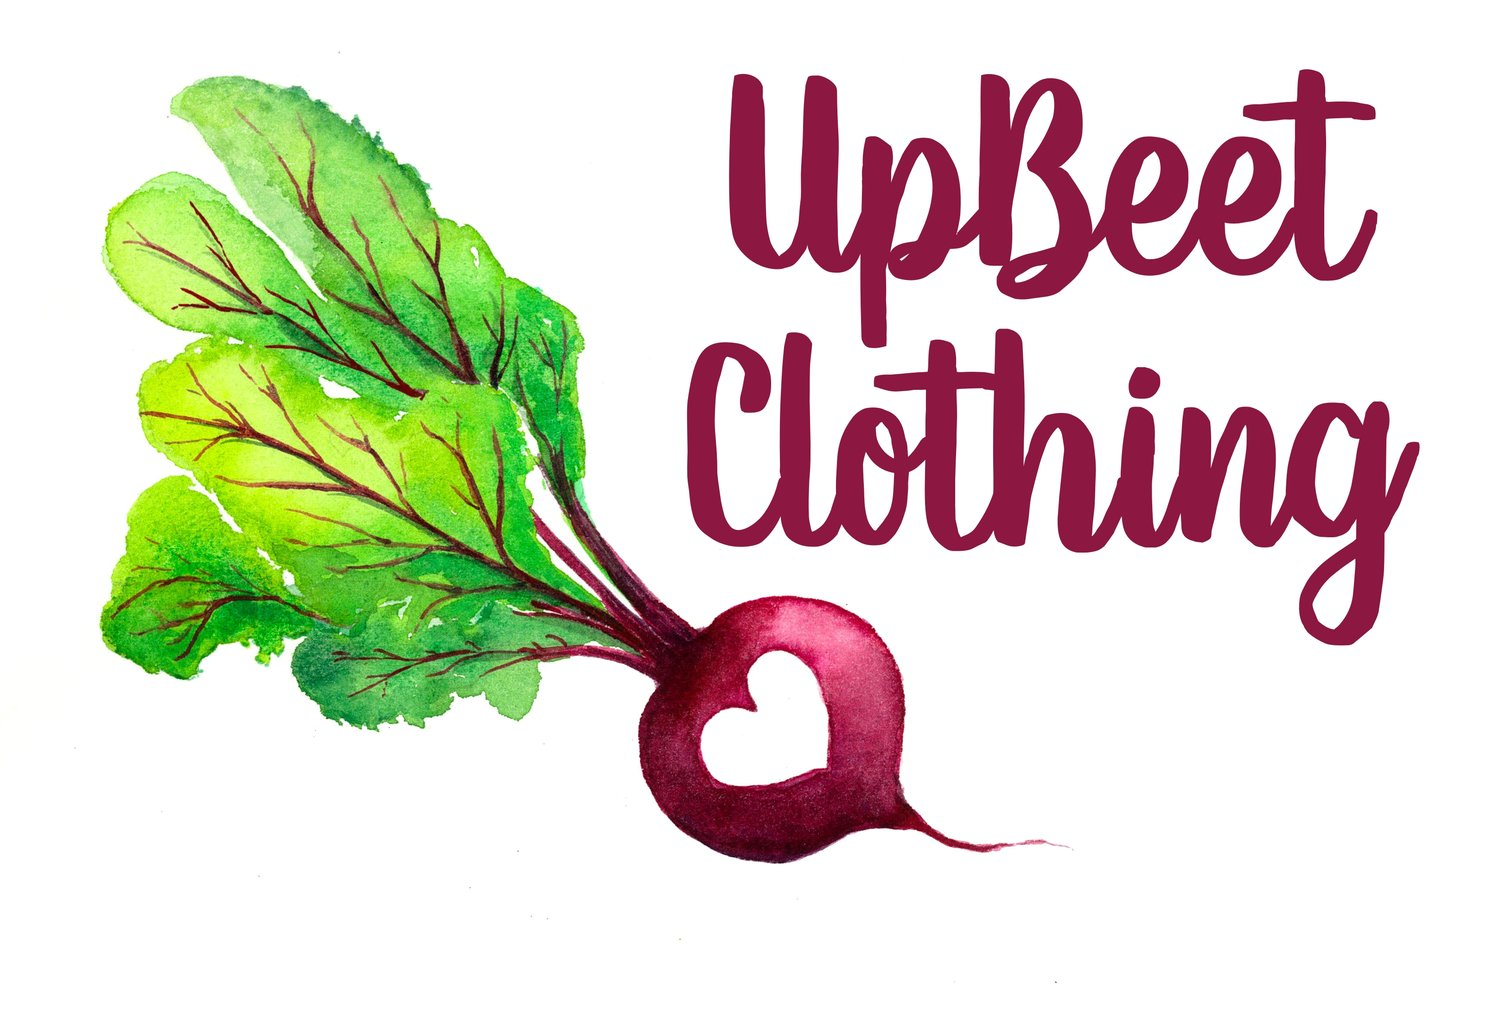 upbeet clothing